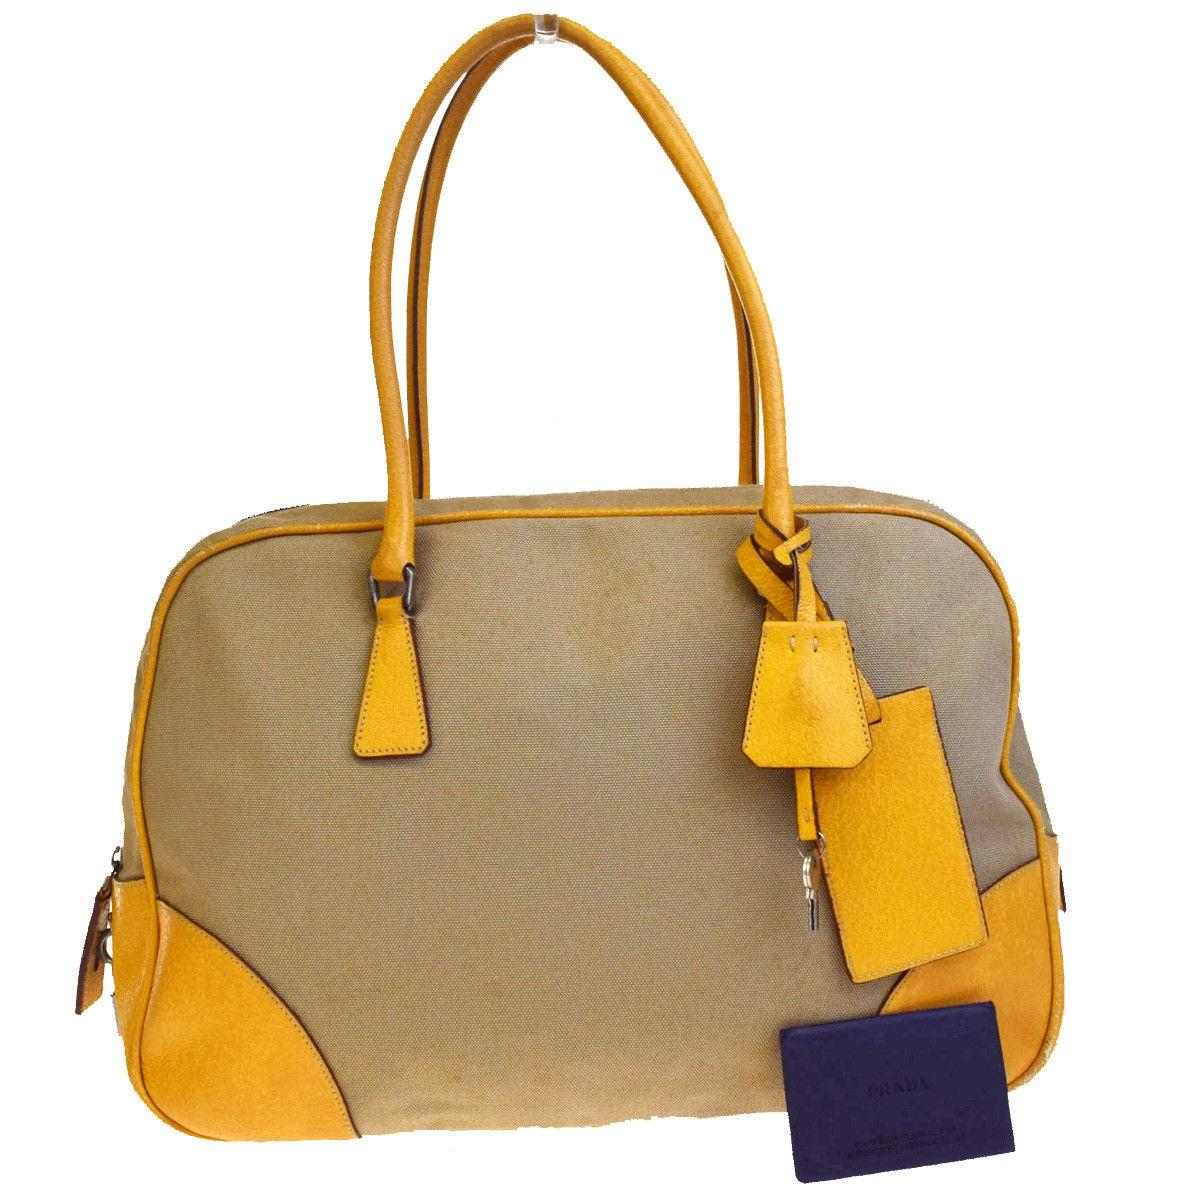 9b791b435a14 ... top quality prada made in italy tote in beige.yellow 0c5ca 91b18